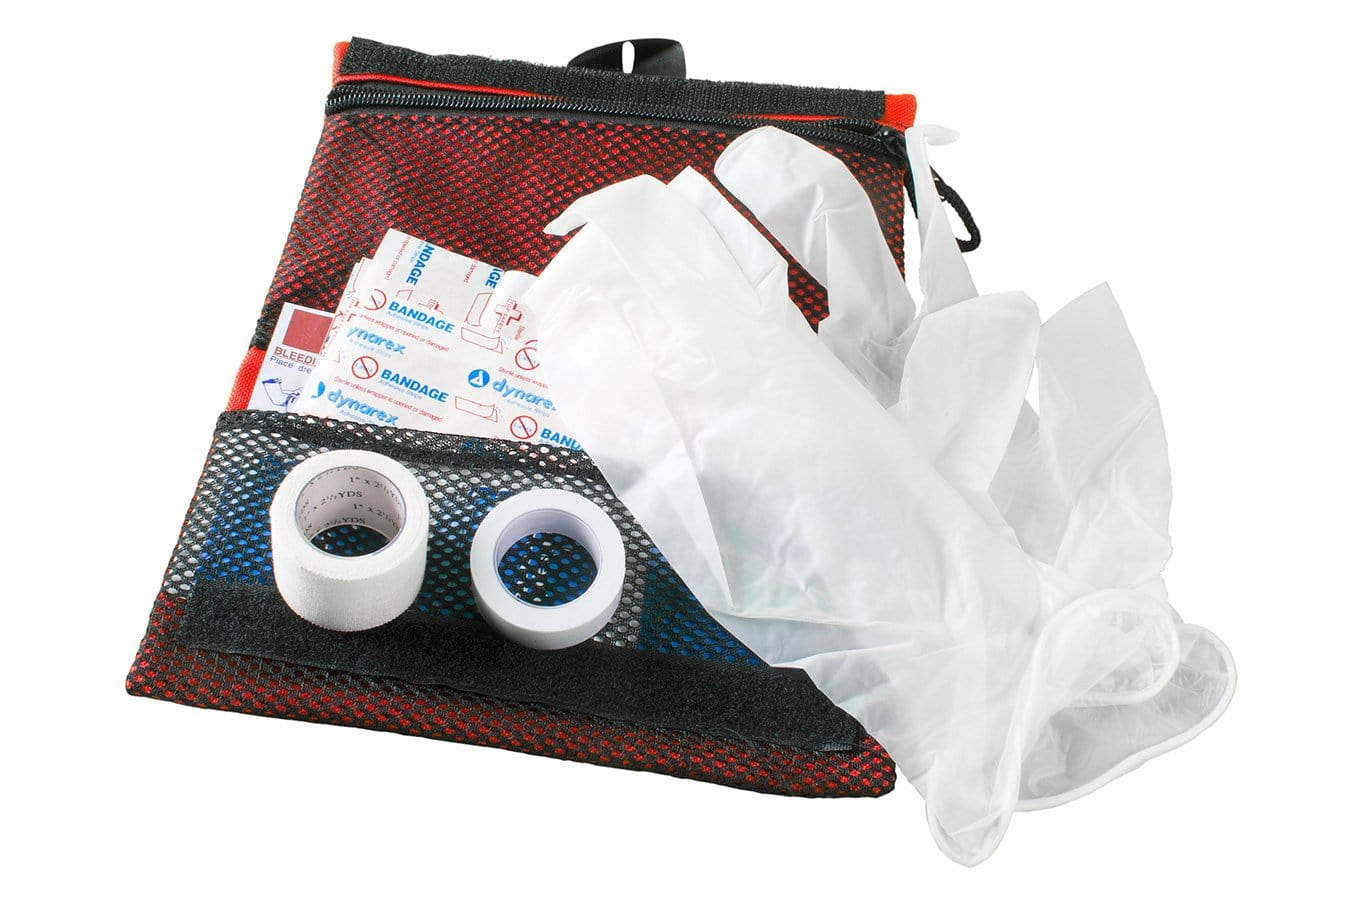 Player First Aid Kit